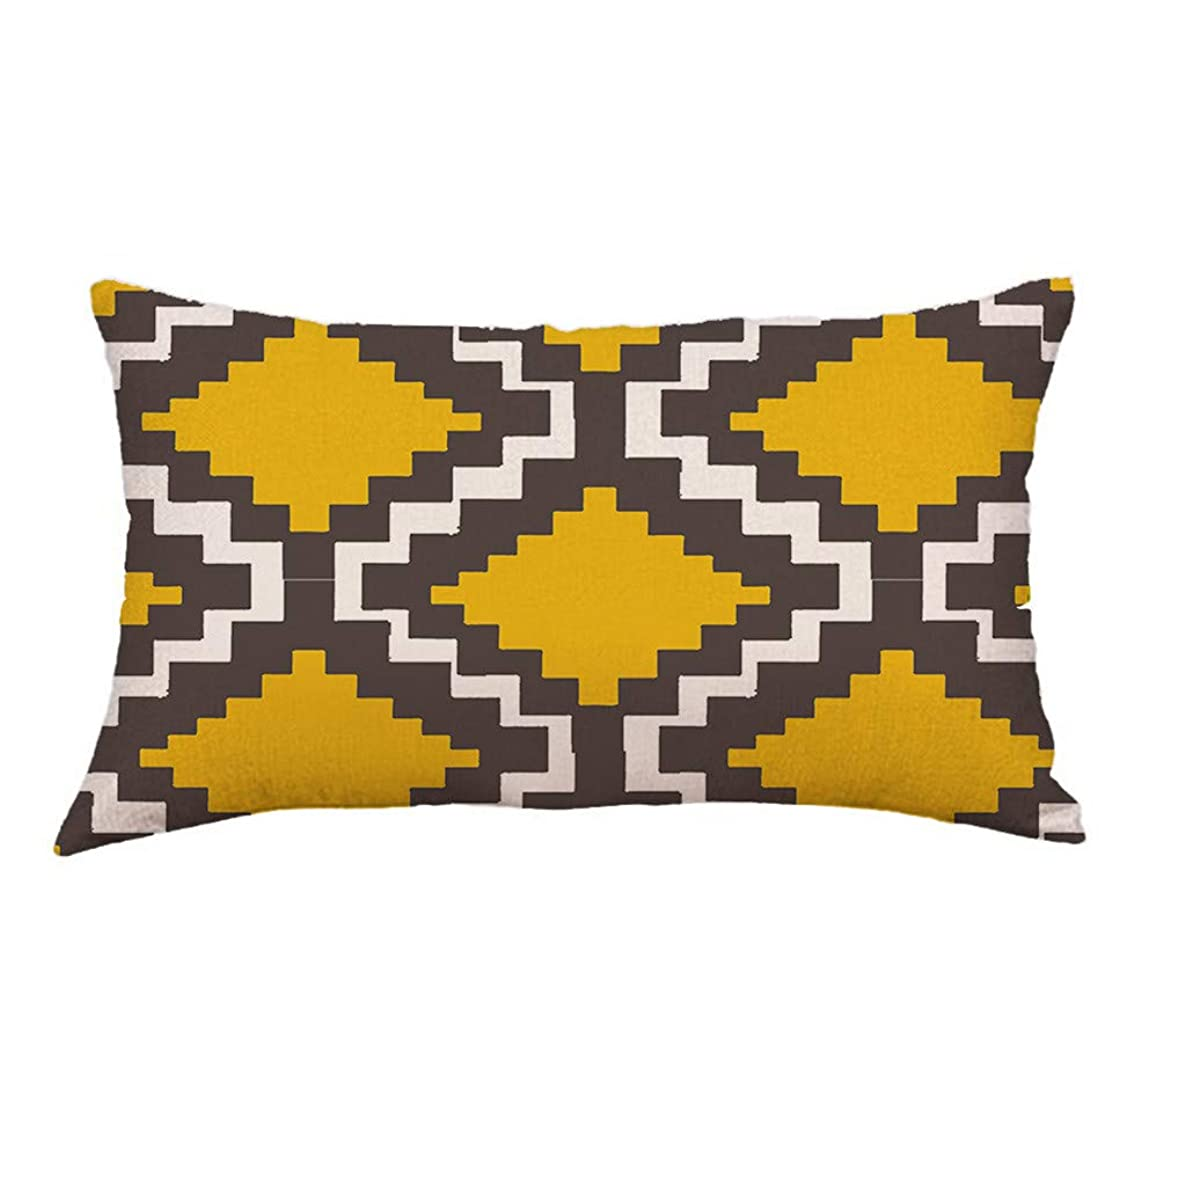 Sunshinehomely Clearance Geometric Rectangle Throw Pillow Covers Super Soft Cushion Cover 12x20